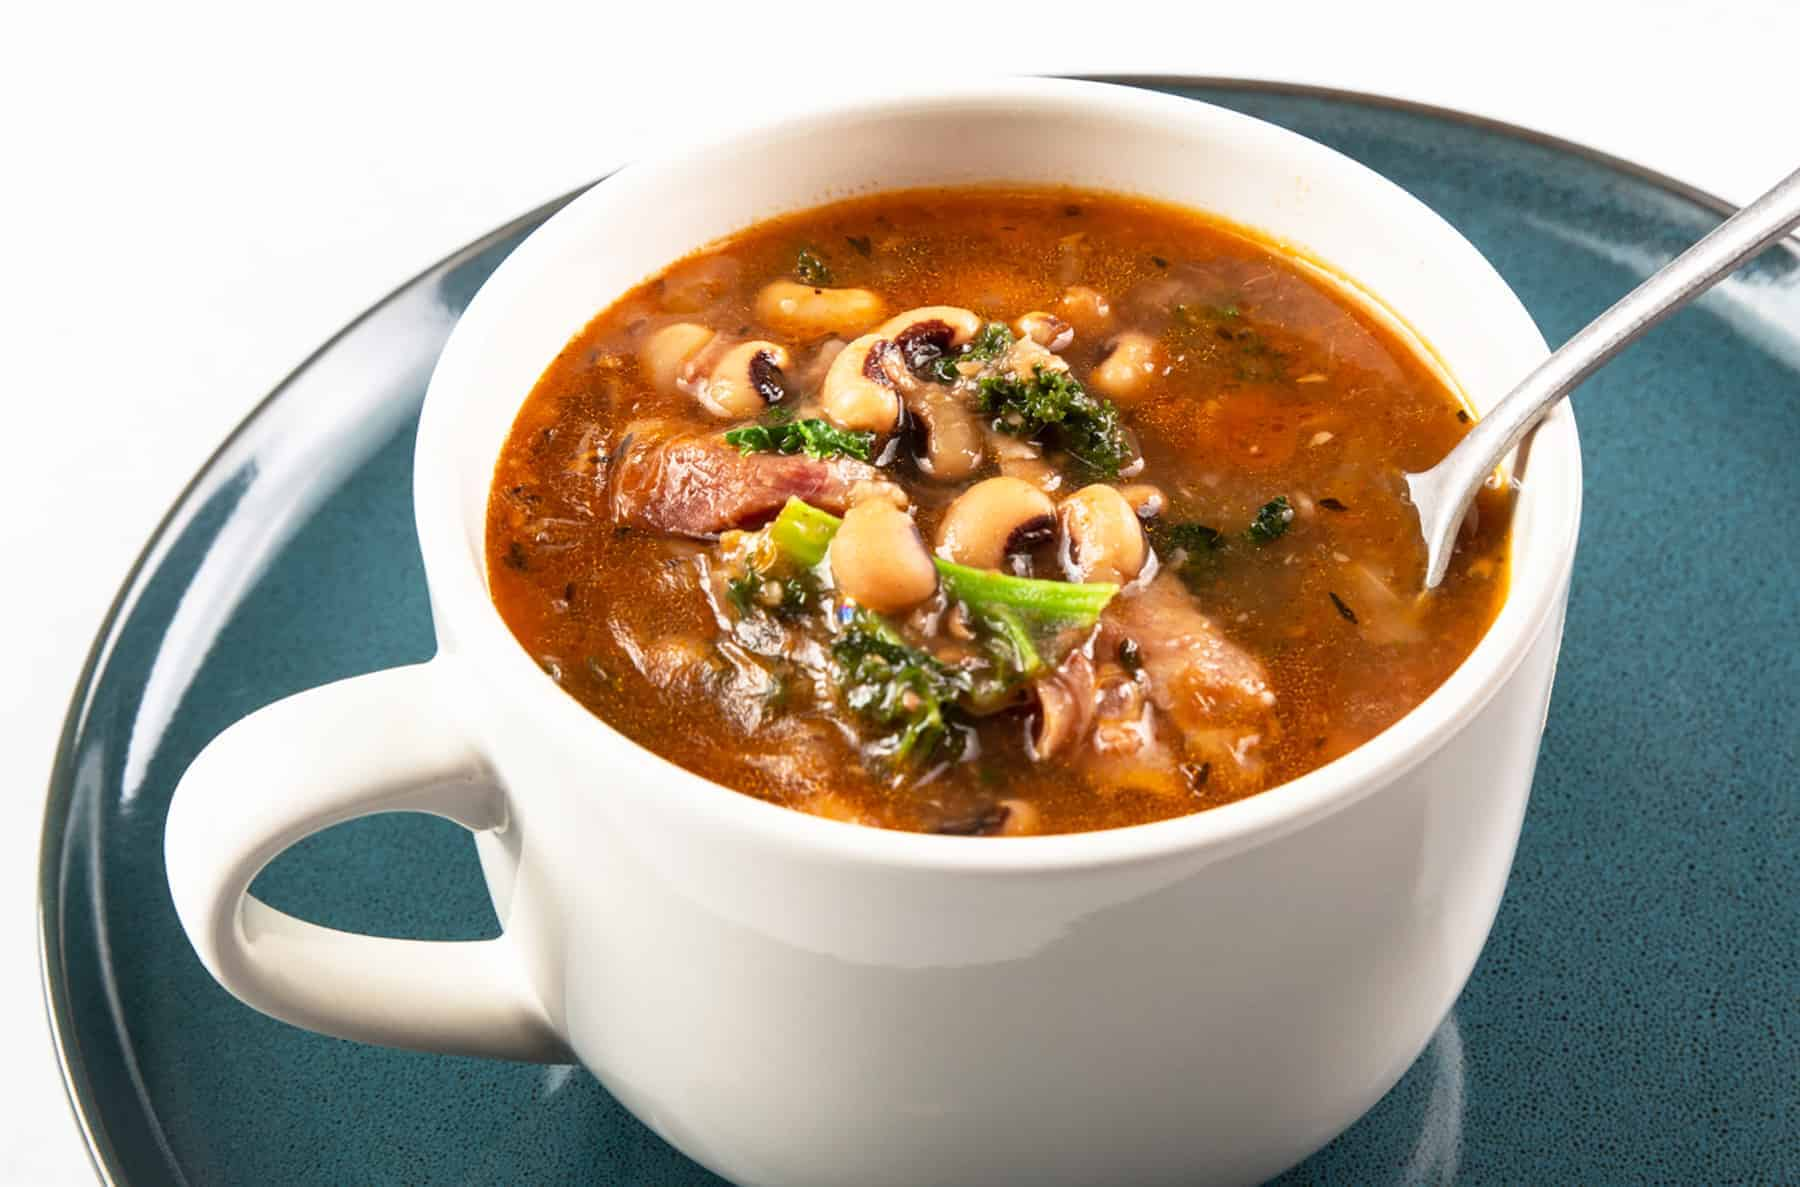 instant pot black eyed peas | black eyed peas instant pot | pressure cooker black eyed peas #AmyJacky #InstantPot #PressureCooker #beans #recipe